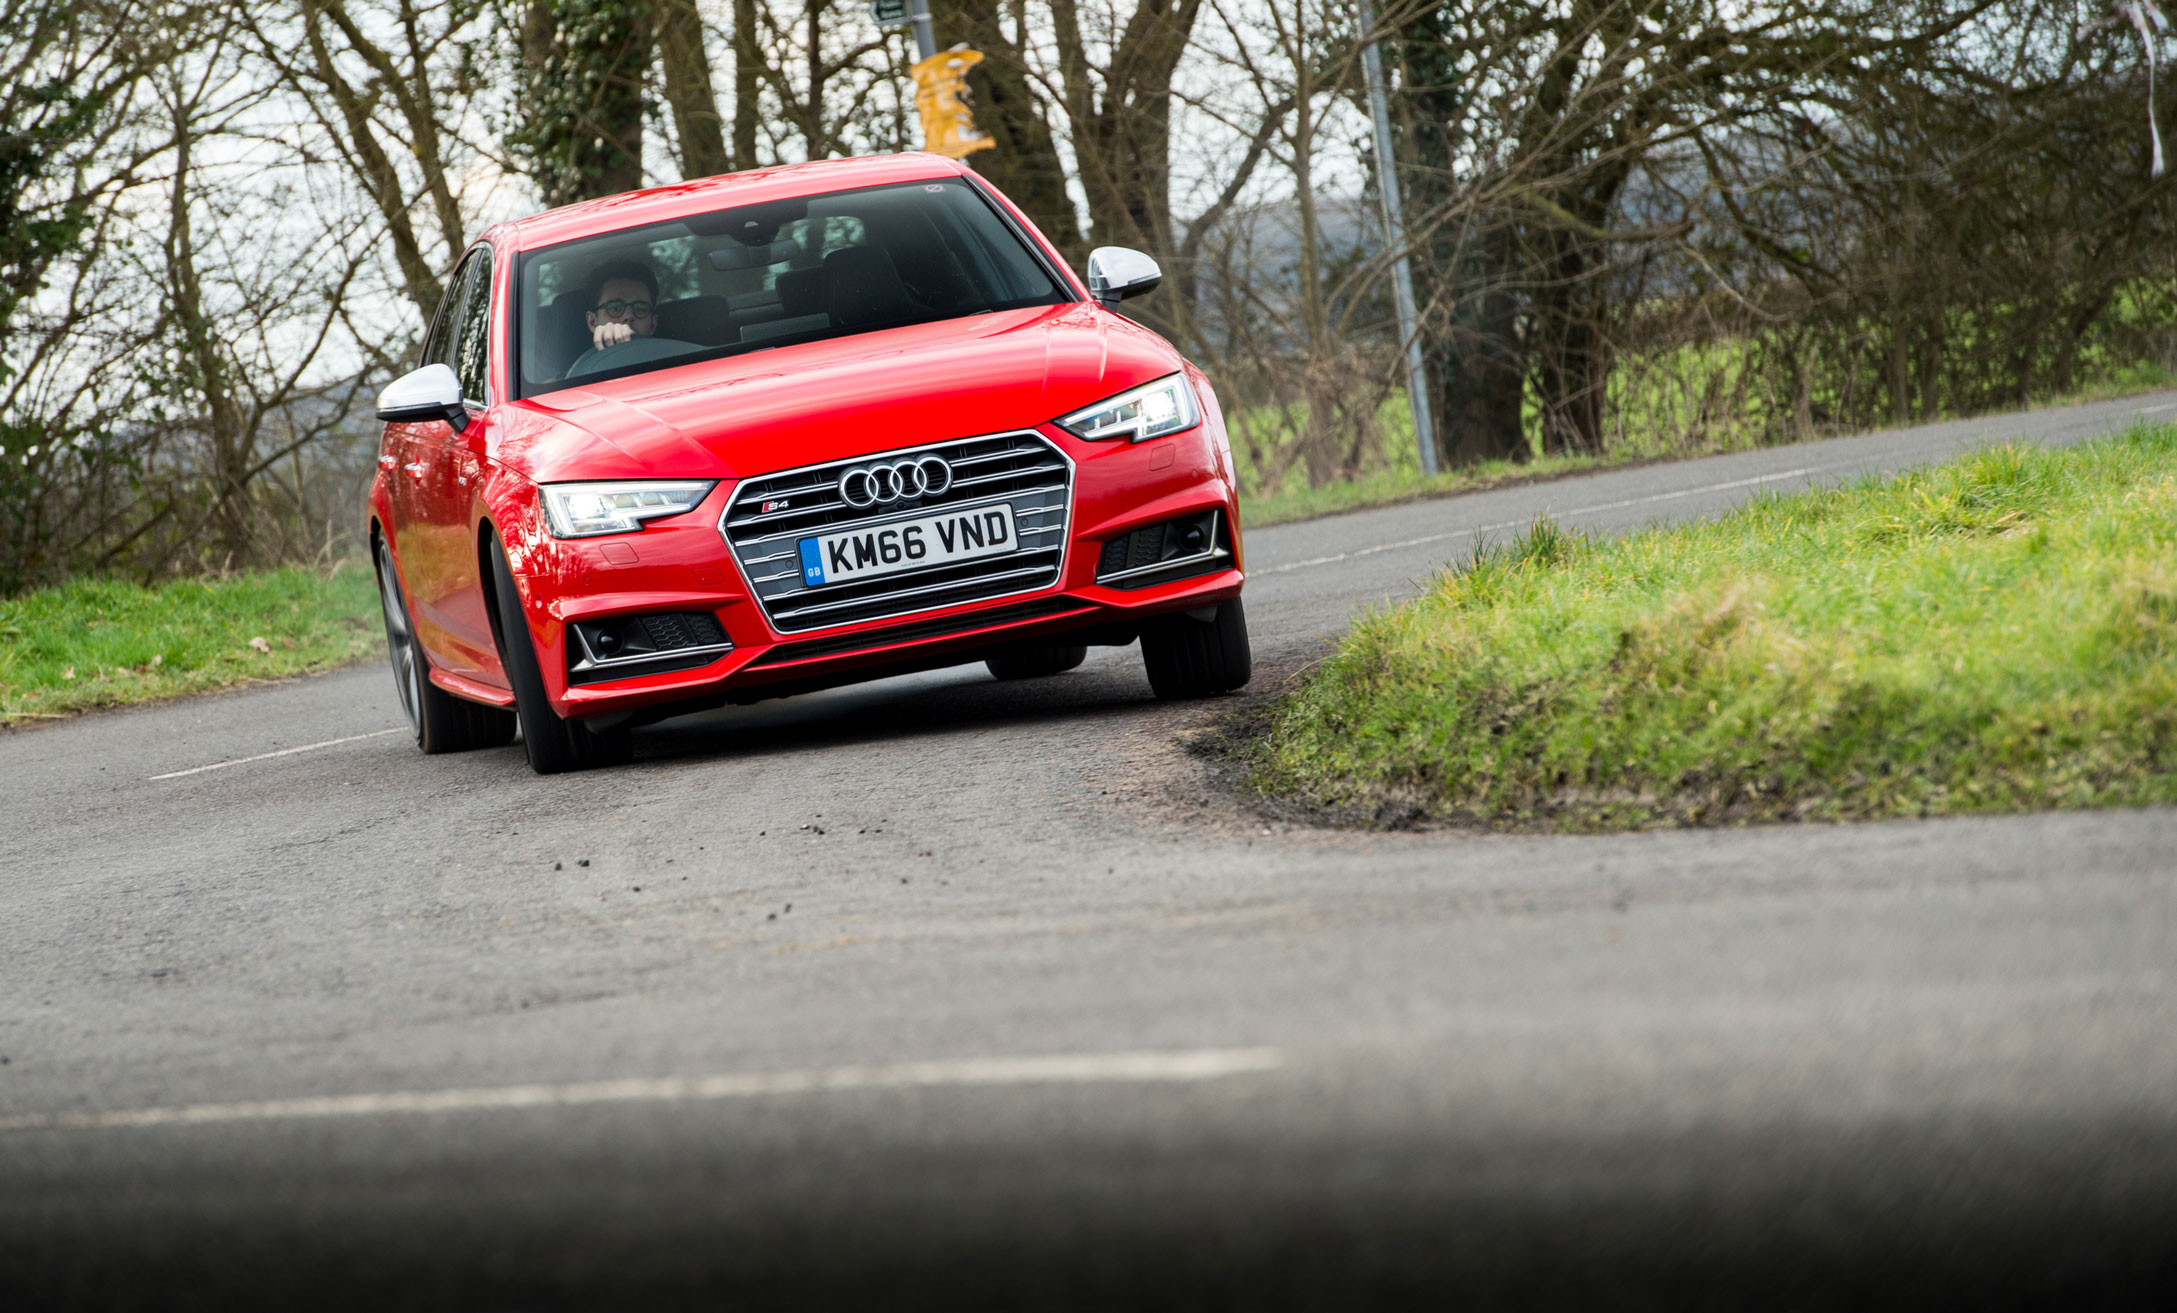 Audi S4 v Mercedes-AMG C43 - Which is the better sports